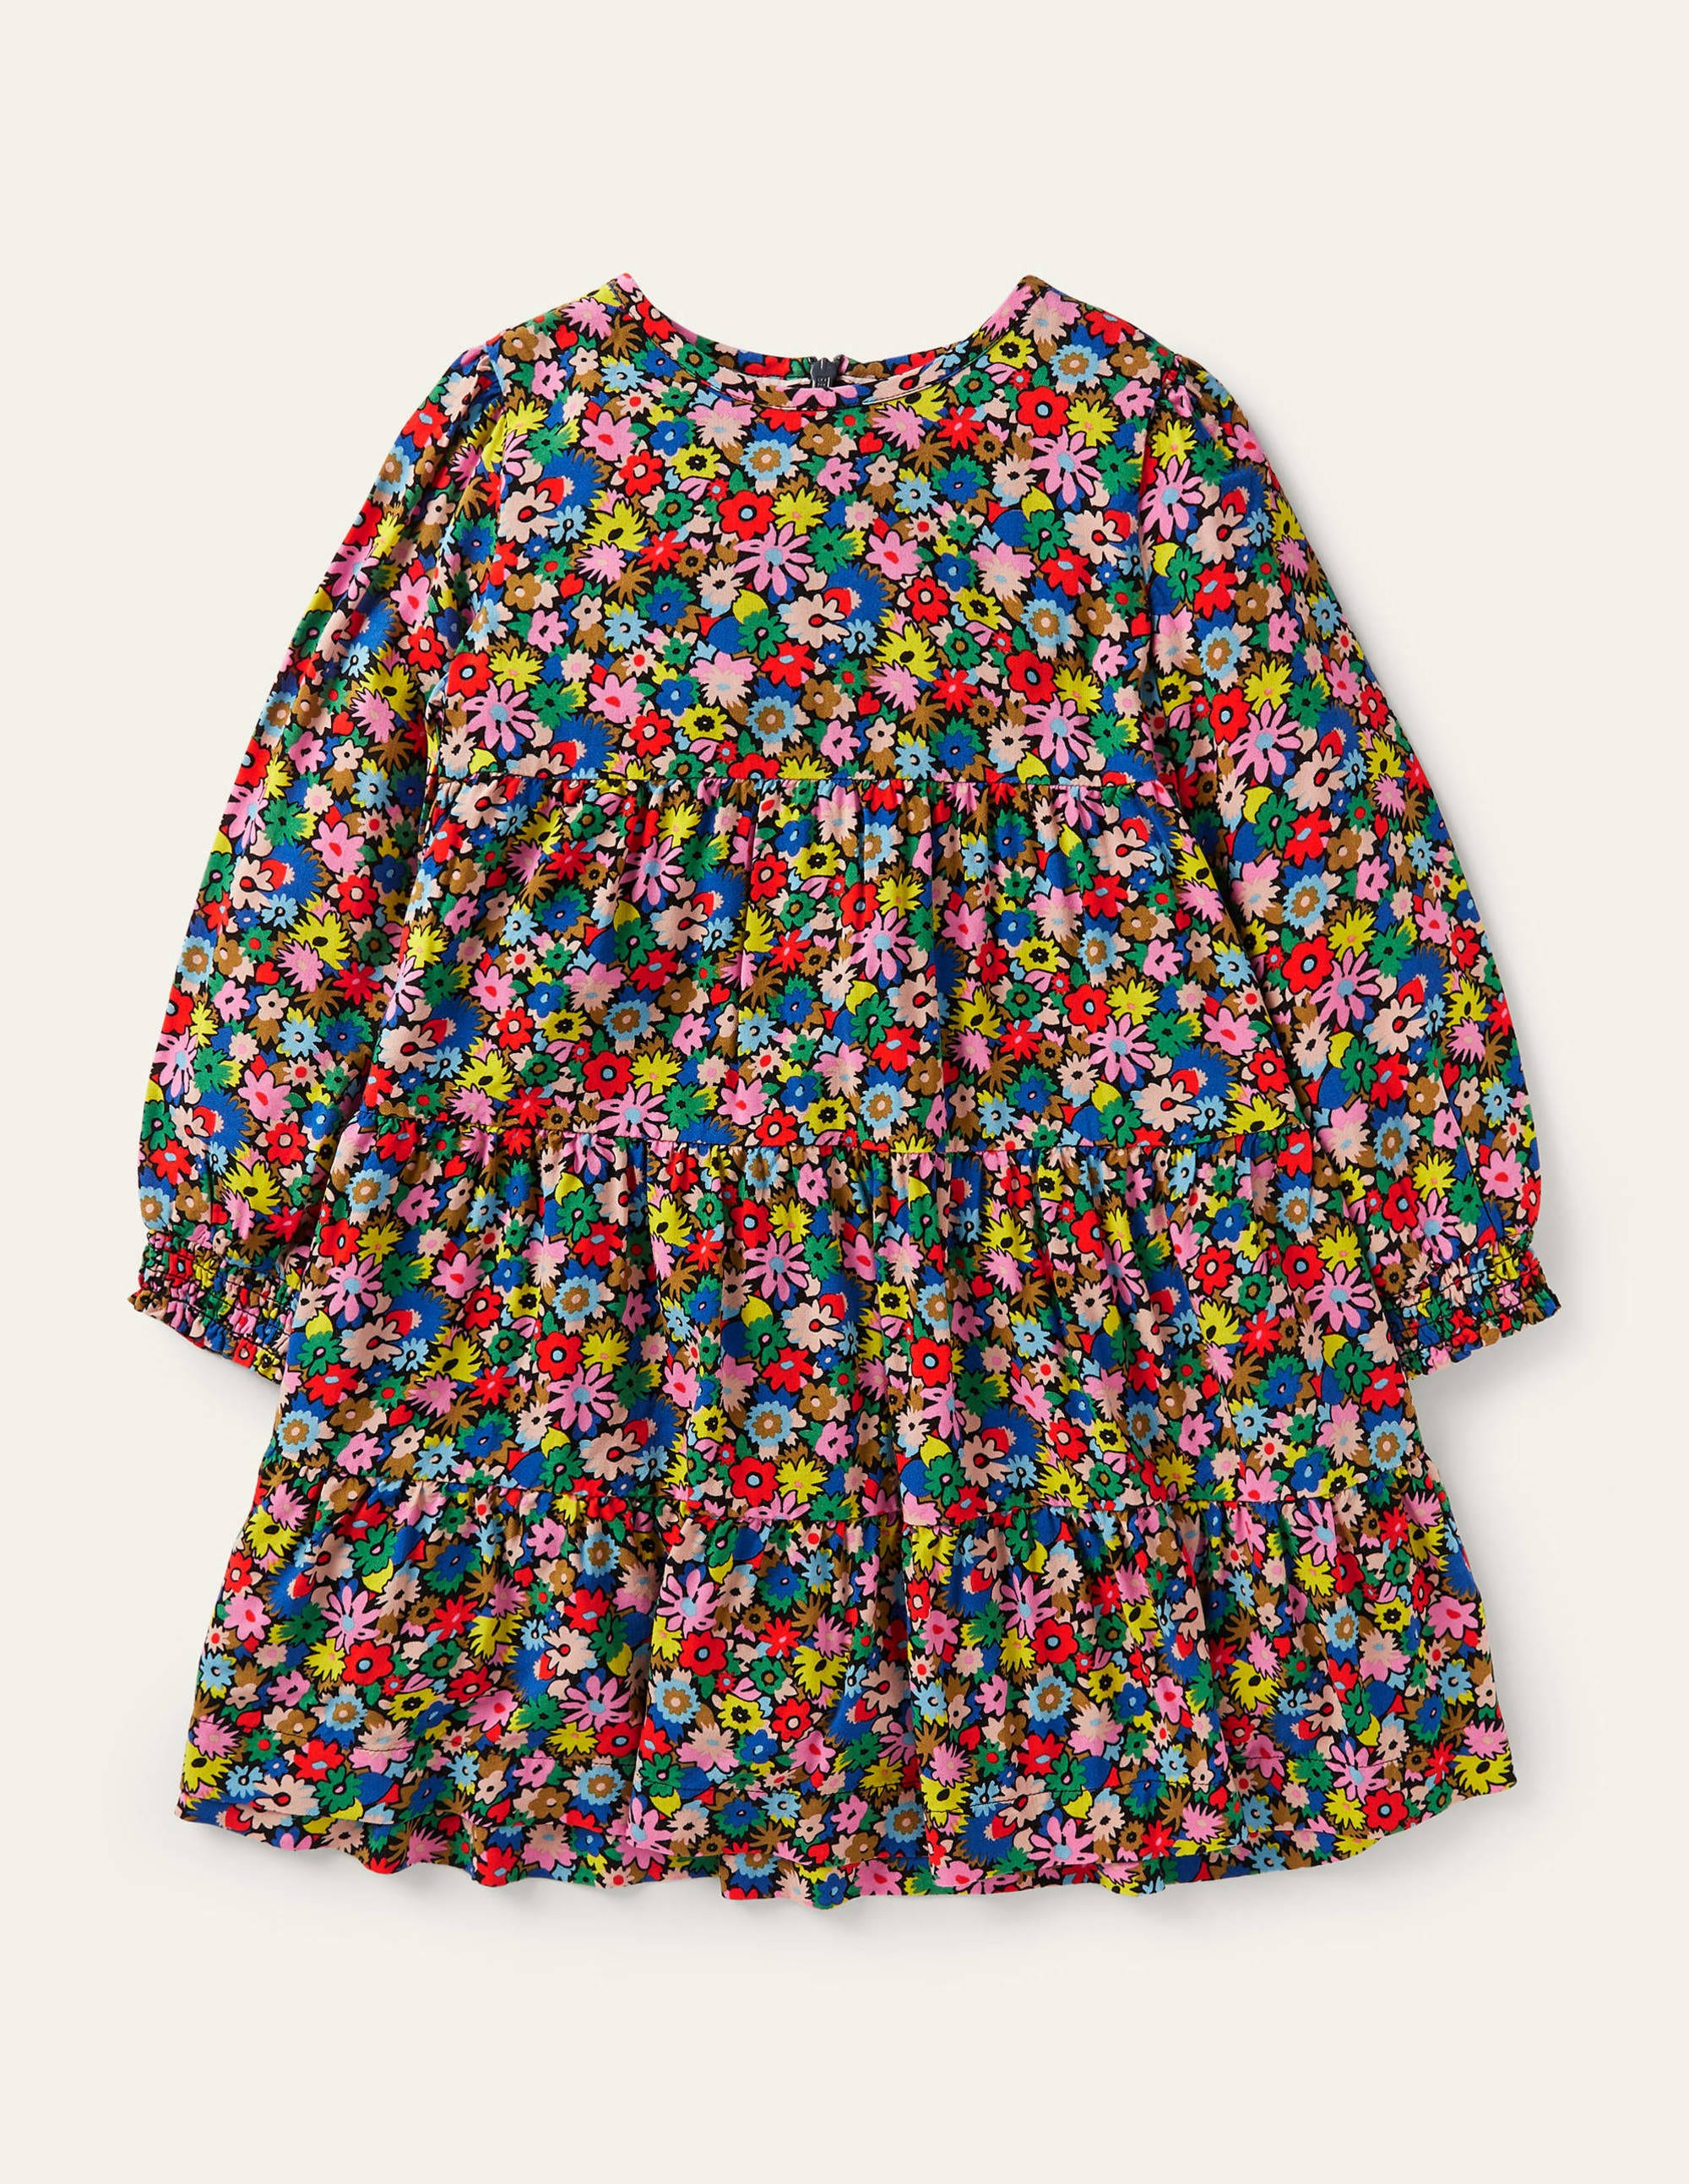 Boden Mini Me Multi Tiered Dress - Multi Paintbox Ditsy